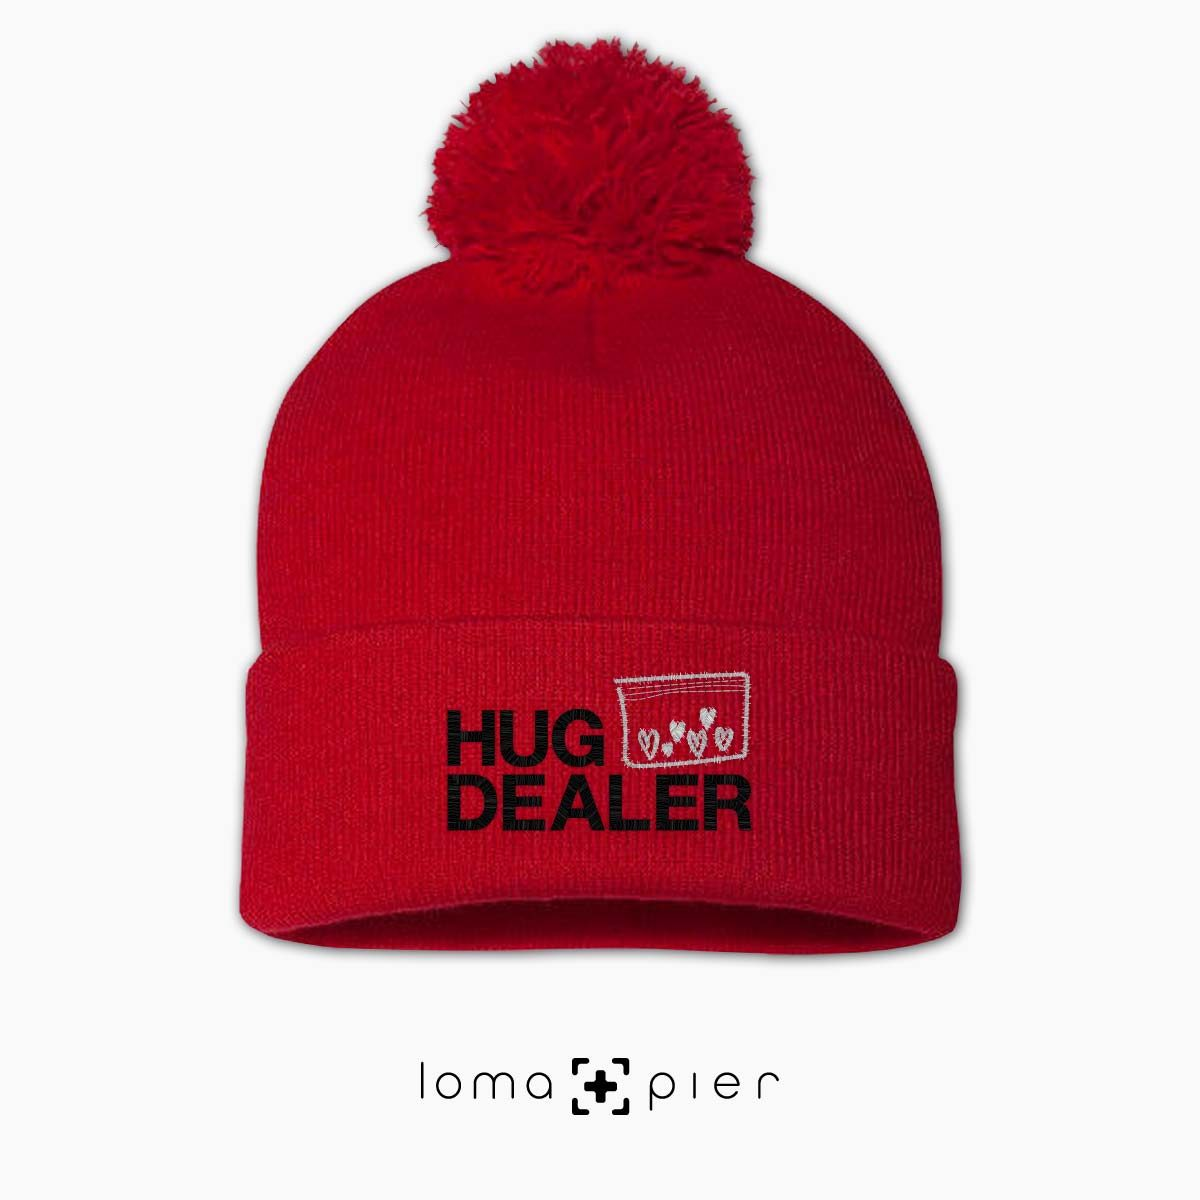 HUG DEALER icon embroidered on a red pom pom beanie with multicolor thread by loma+pier hat store